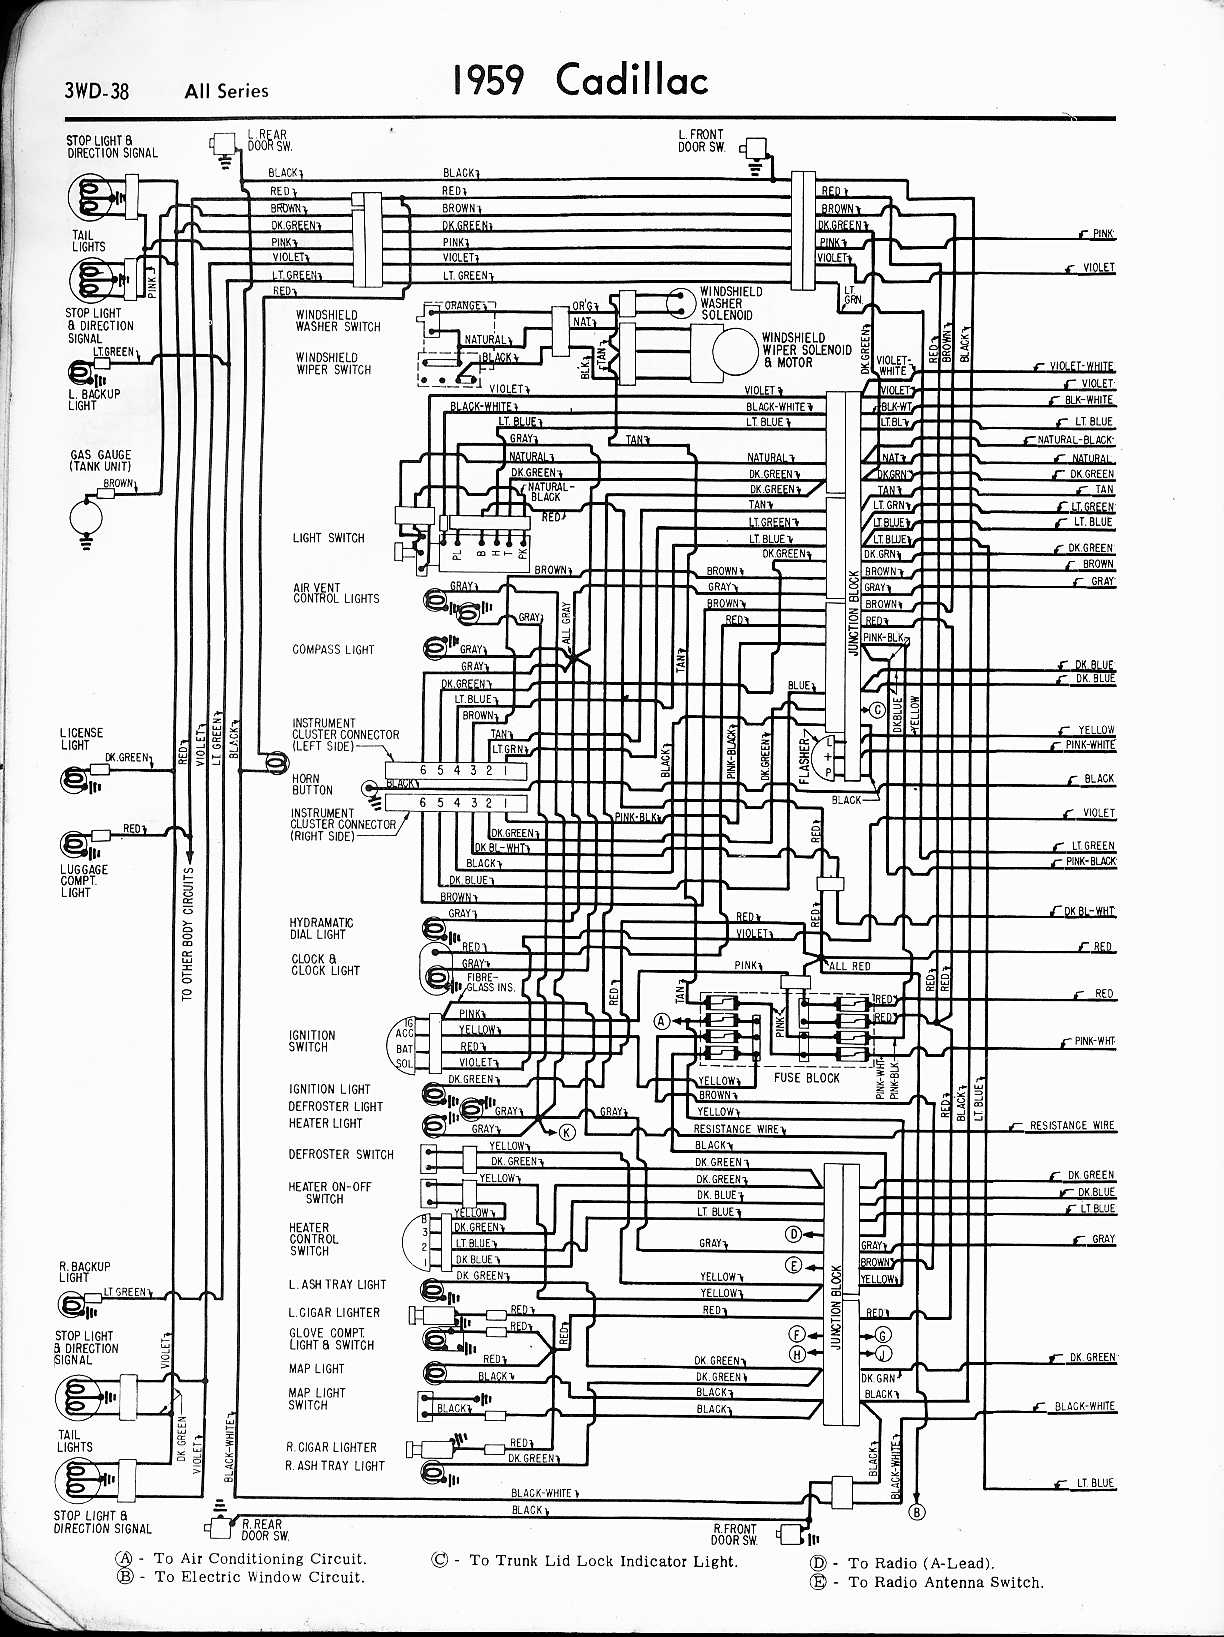 diagram] 84 cadillac eldorado wiring diagram full version hd quality wiring  diagram - diagramin.jepix.fr  diagram database